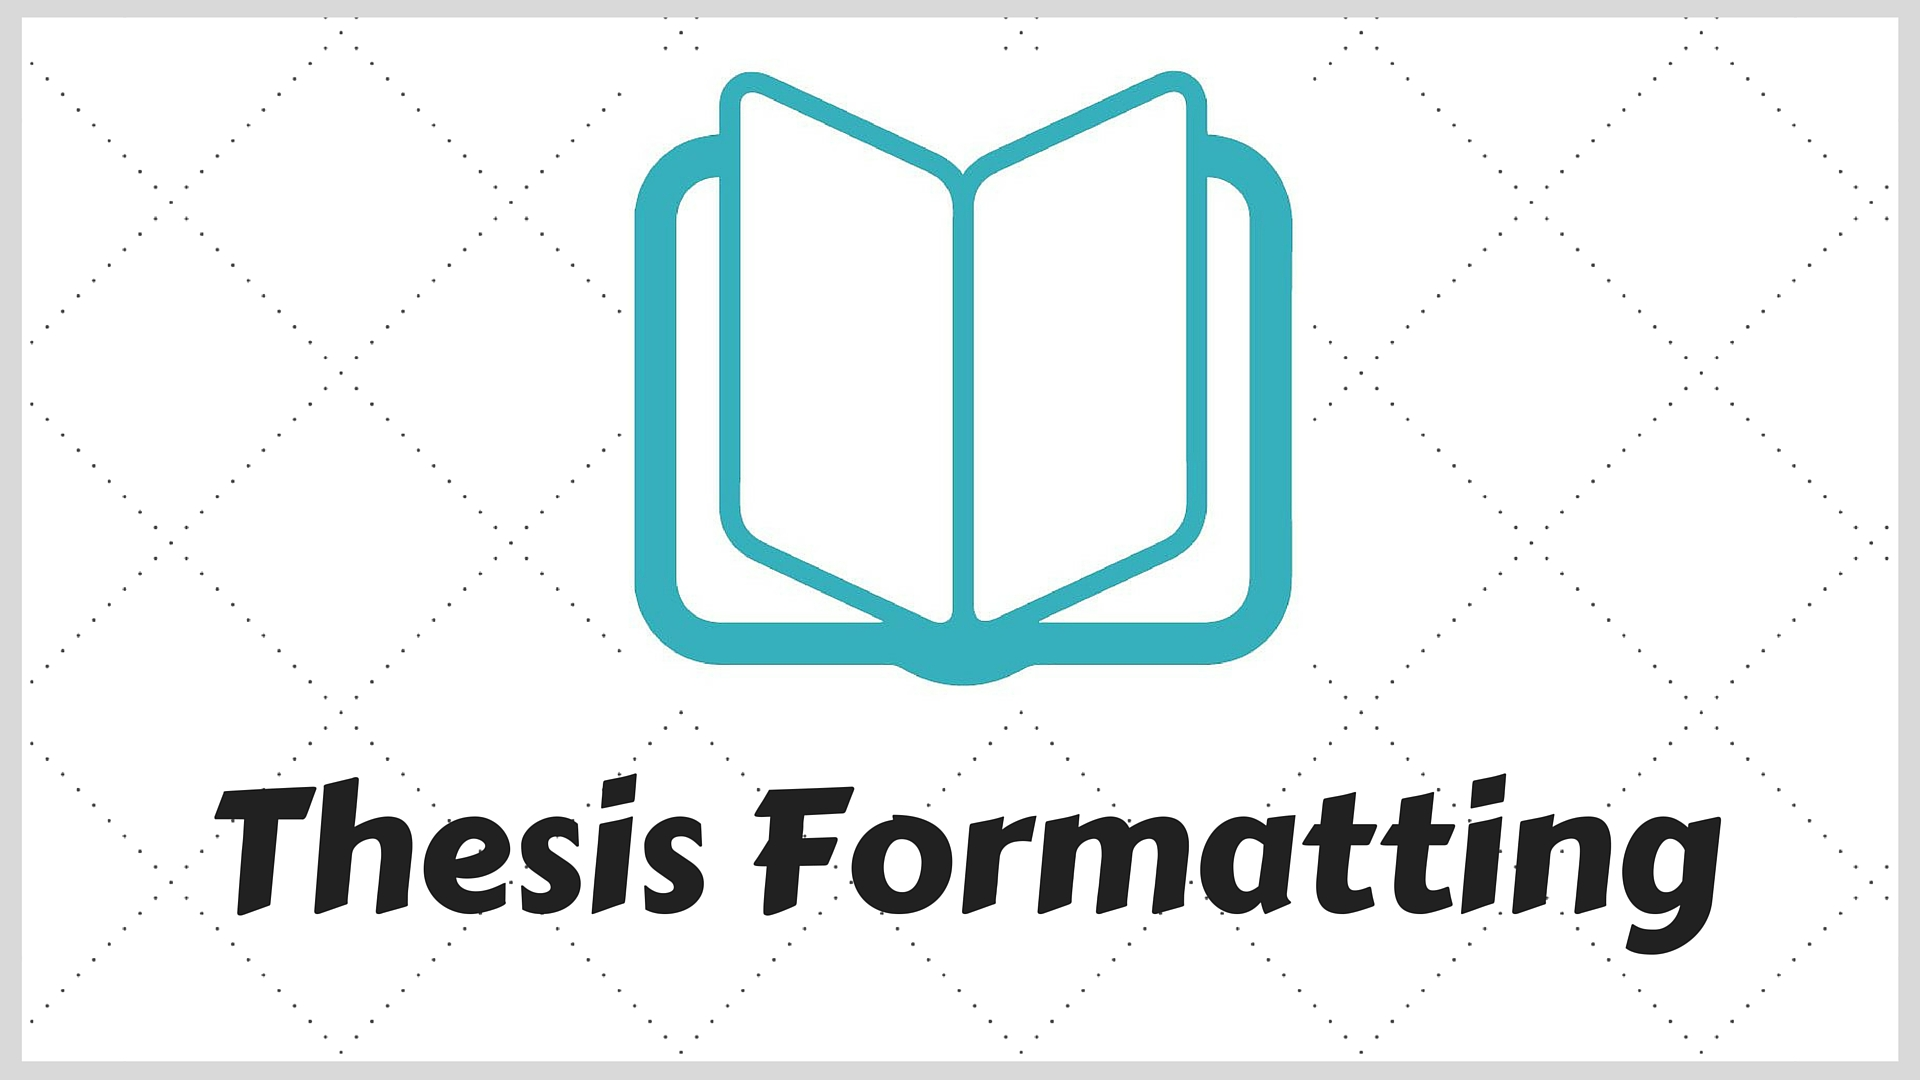 Thesis Formatting - UBC Library Research Commons